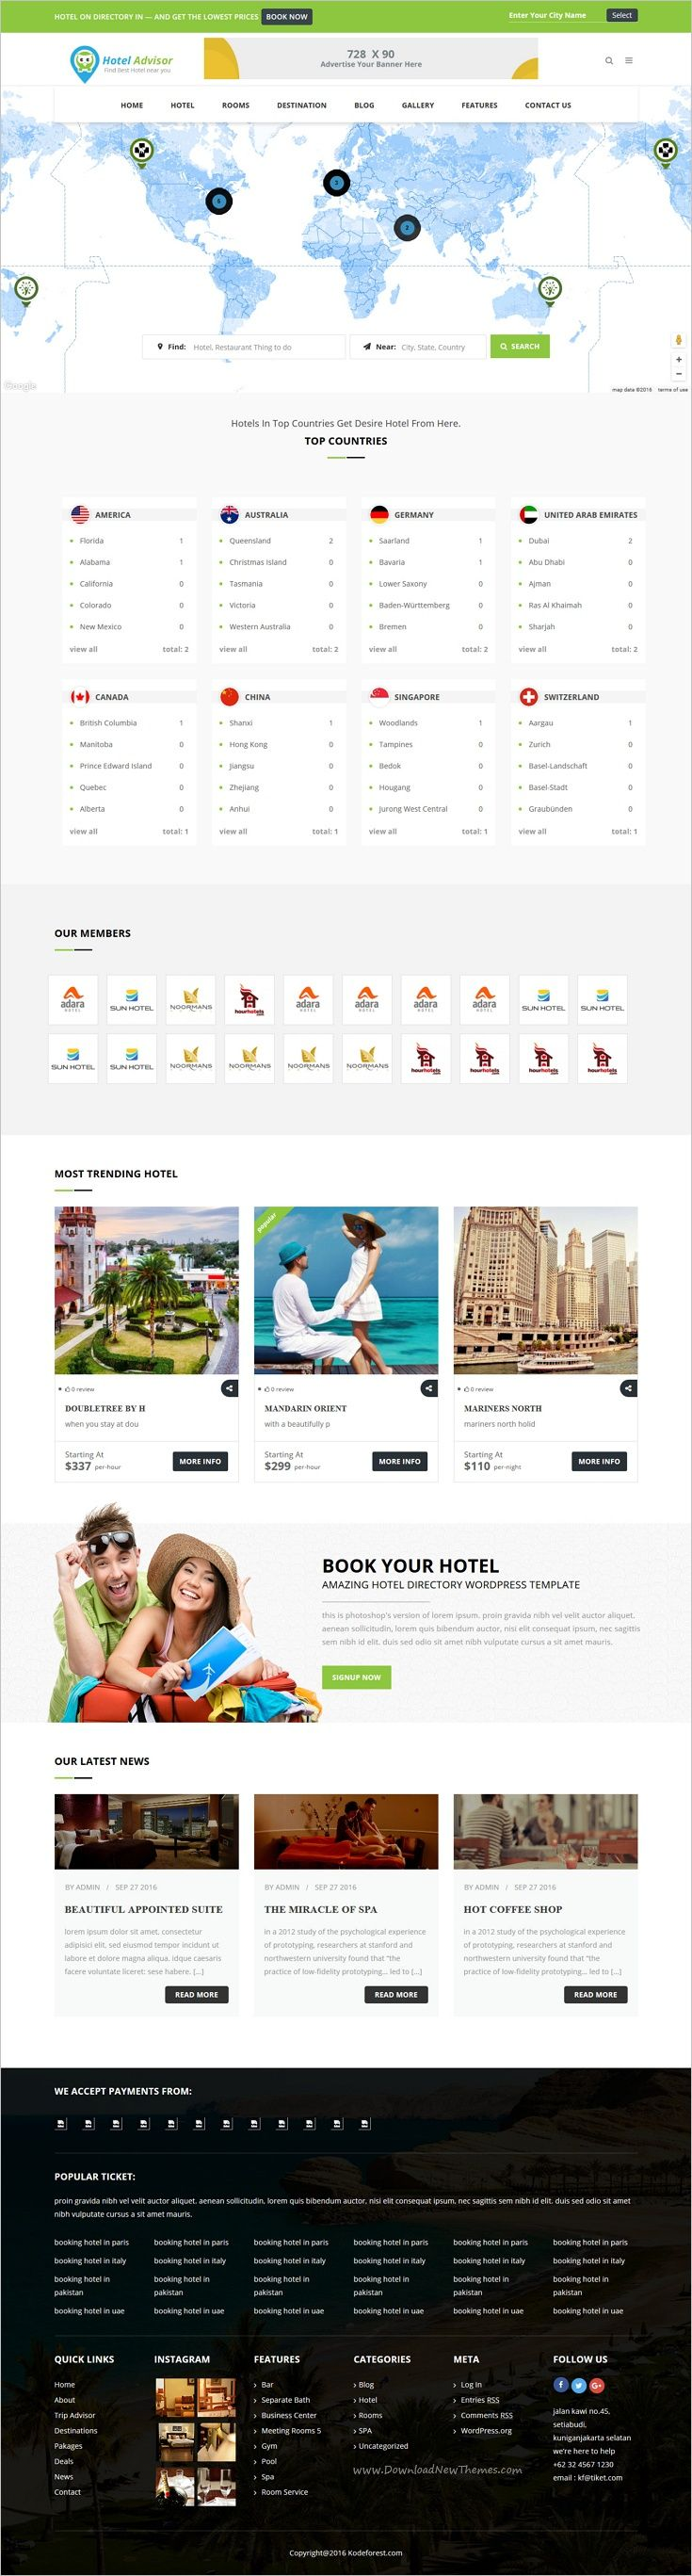 Hotel Advisor is a clean and modern design 6 in 1 #WordPress theme #webdev to manage #hotels, resorts, #rooms reservation with in depth review and booking management system website download now➩  https://themeforest.net/item/hotel-advisor-hotel-management-and-booking-wordpress-theme/18435488?ref=Datasata